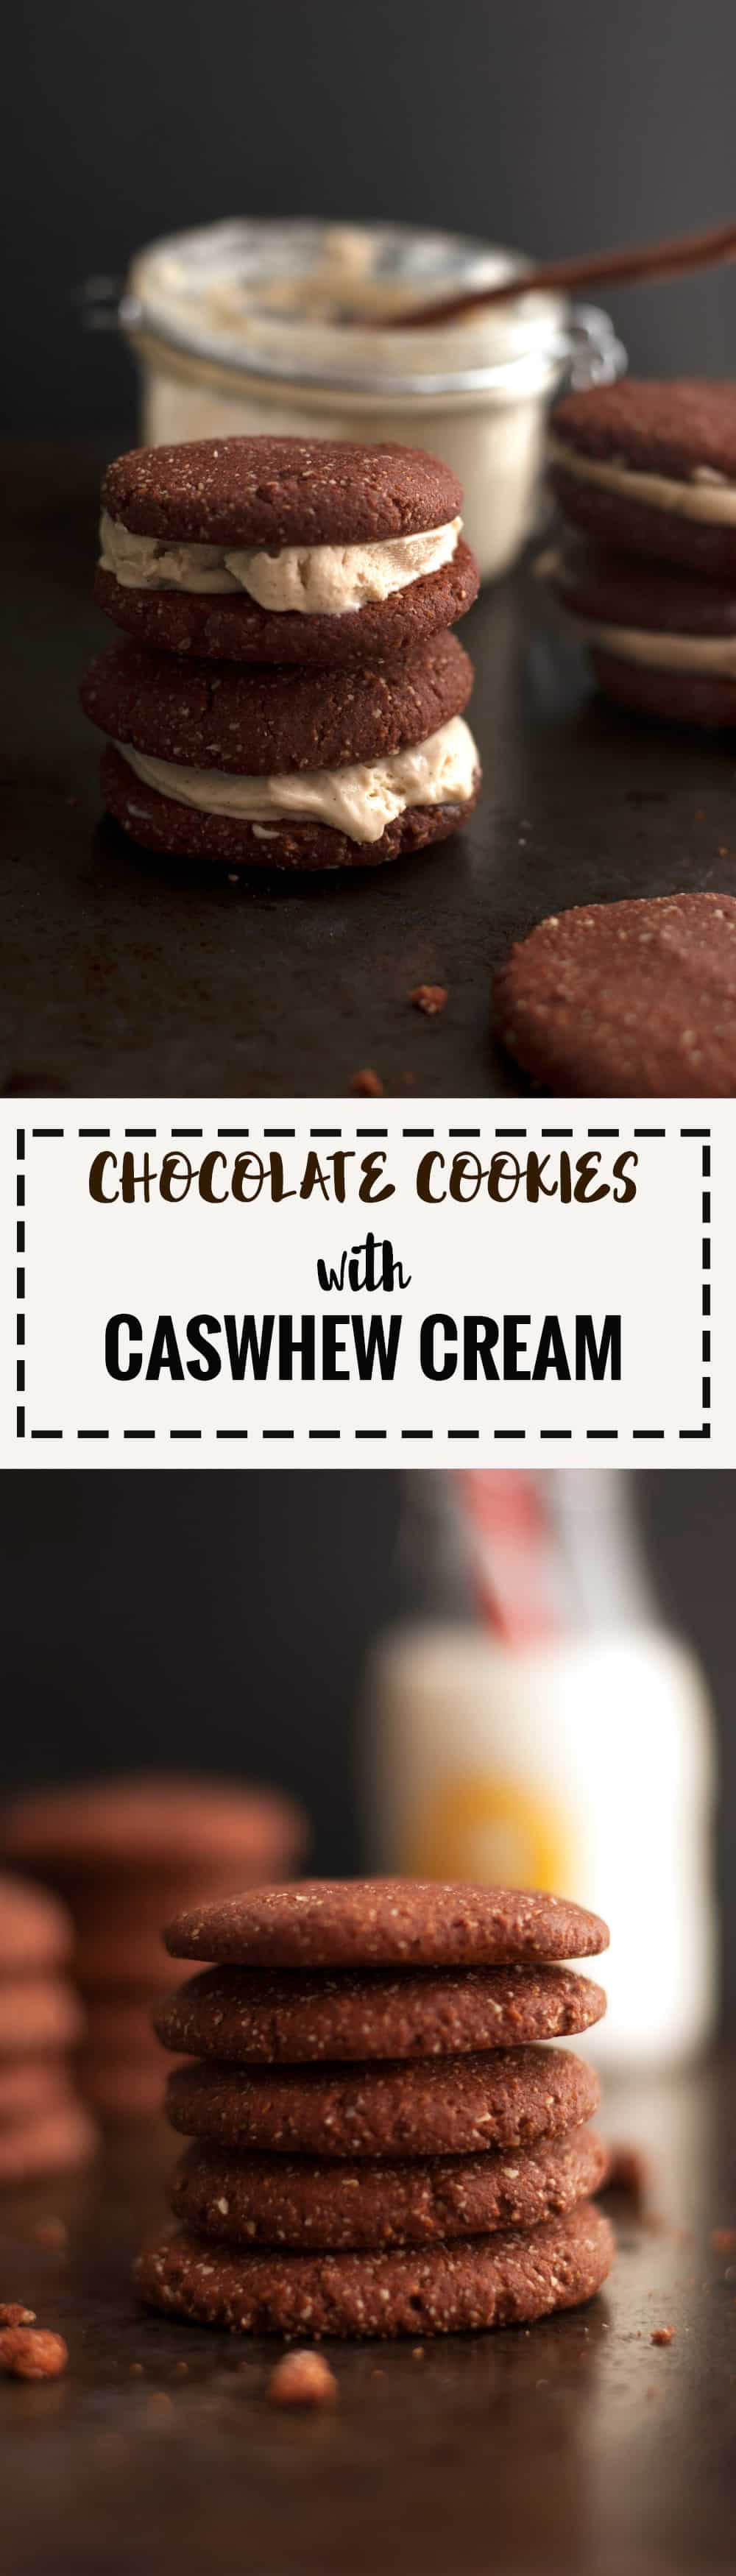 Choc-Cookies-with-Cream-Pinterest3